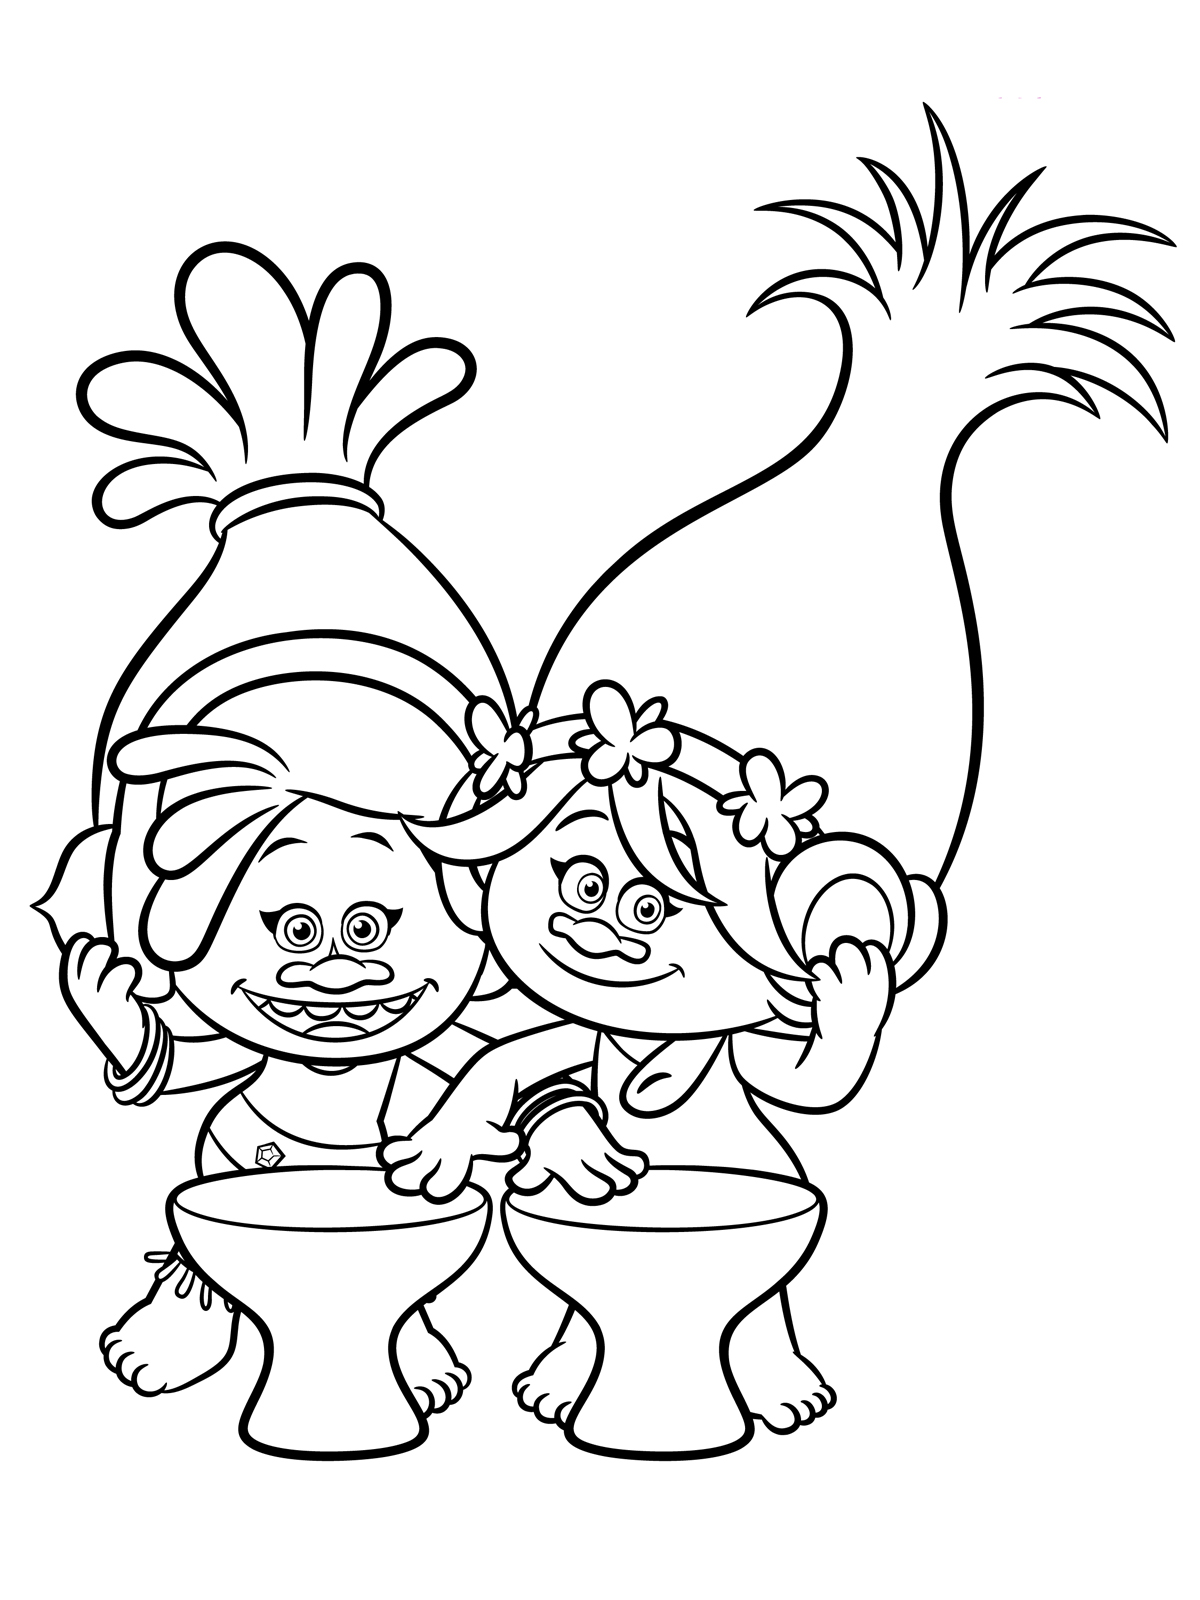 1200x1600 Trolls Coloring Pages For Girls Humorous Print Draw Printable